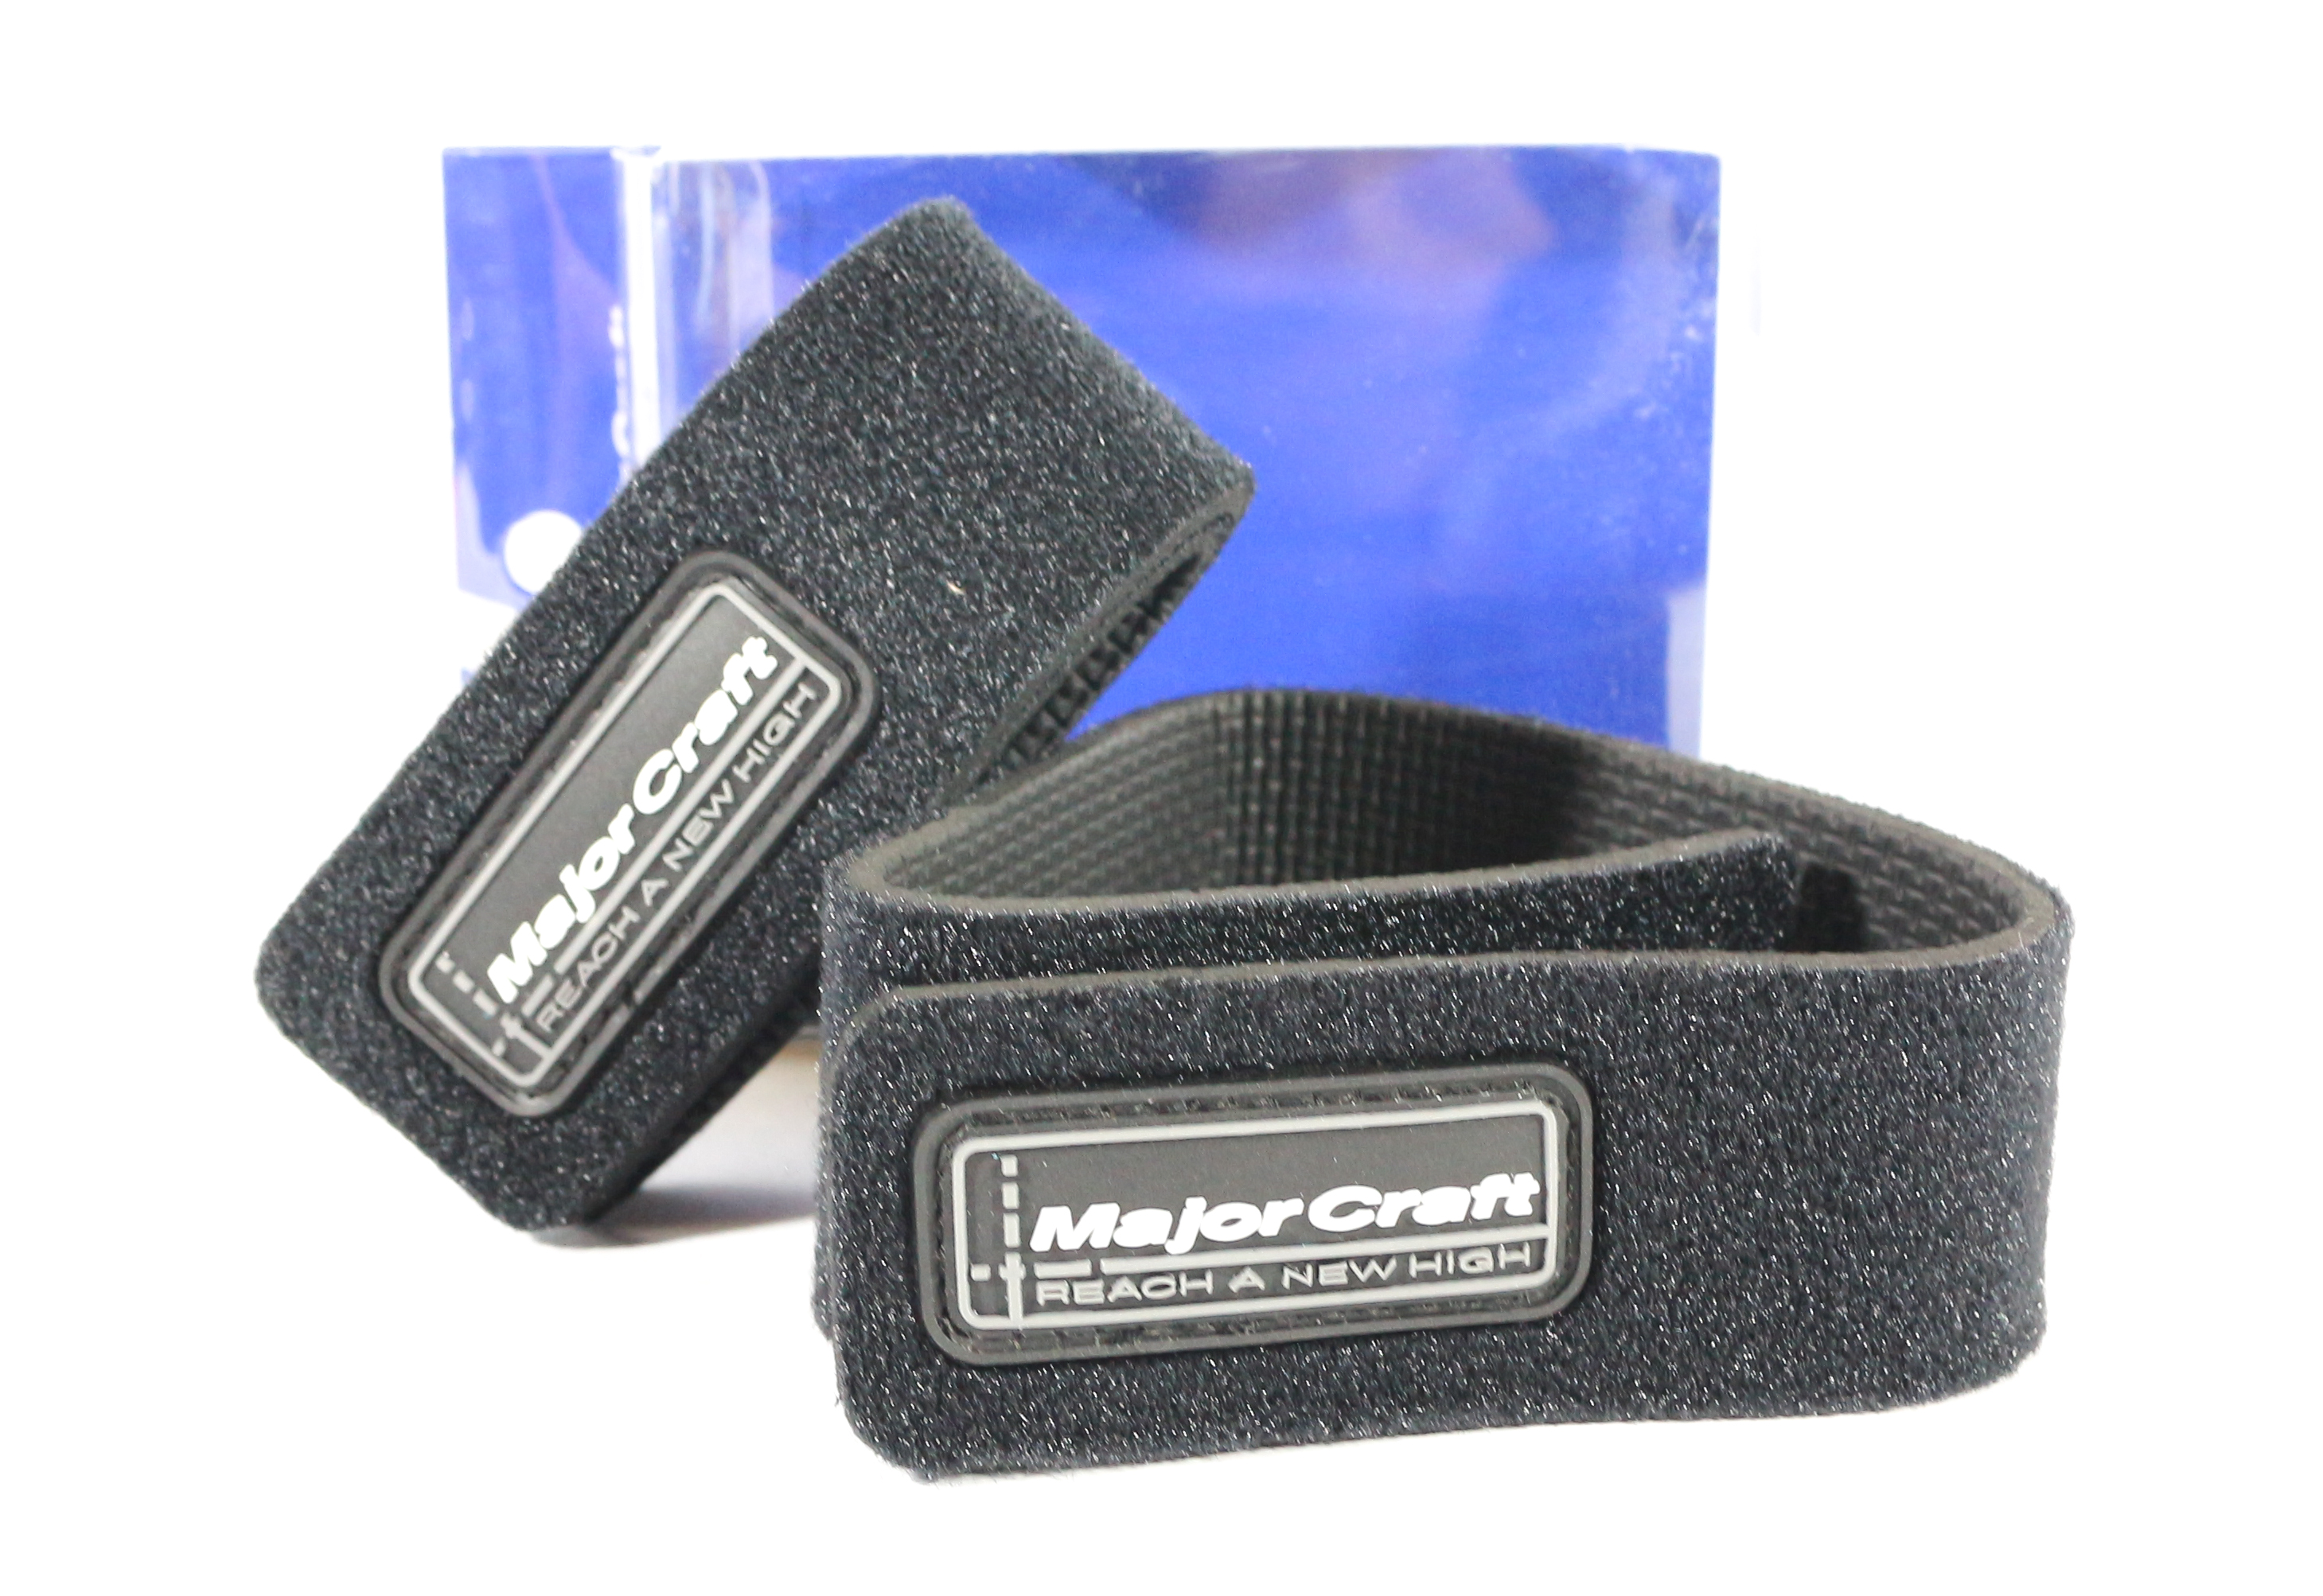 Major Craft MCRB 100BK Rod Belt Strap 2 Piece Pack Regular Size (9971)